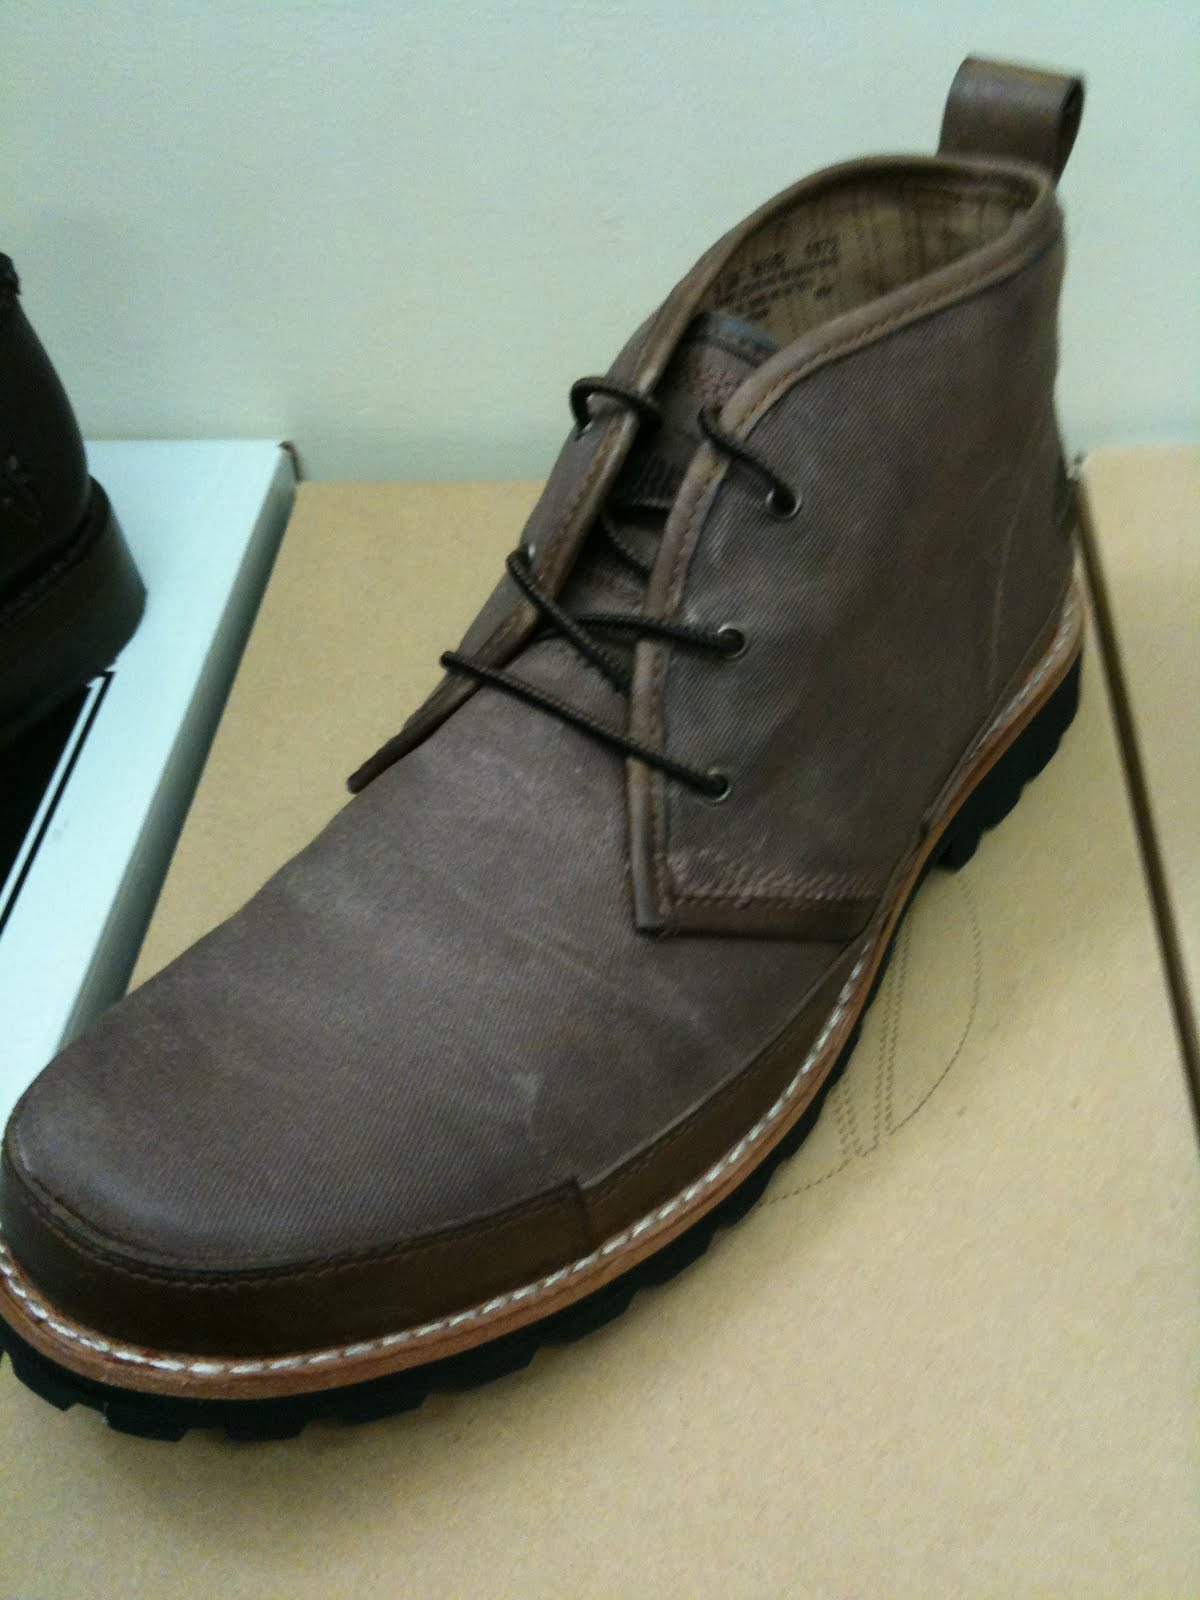 My Christmas Shoes Review: The Timberland